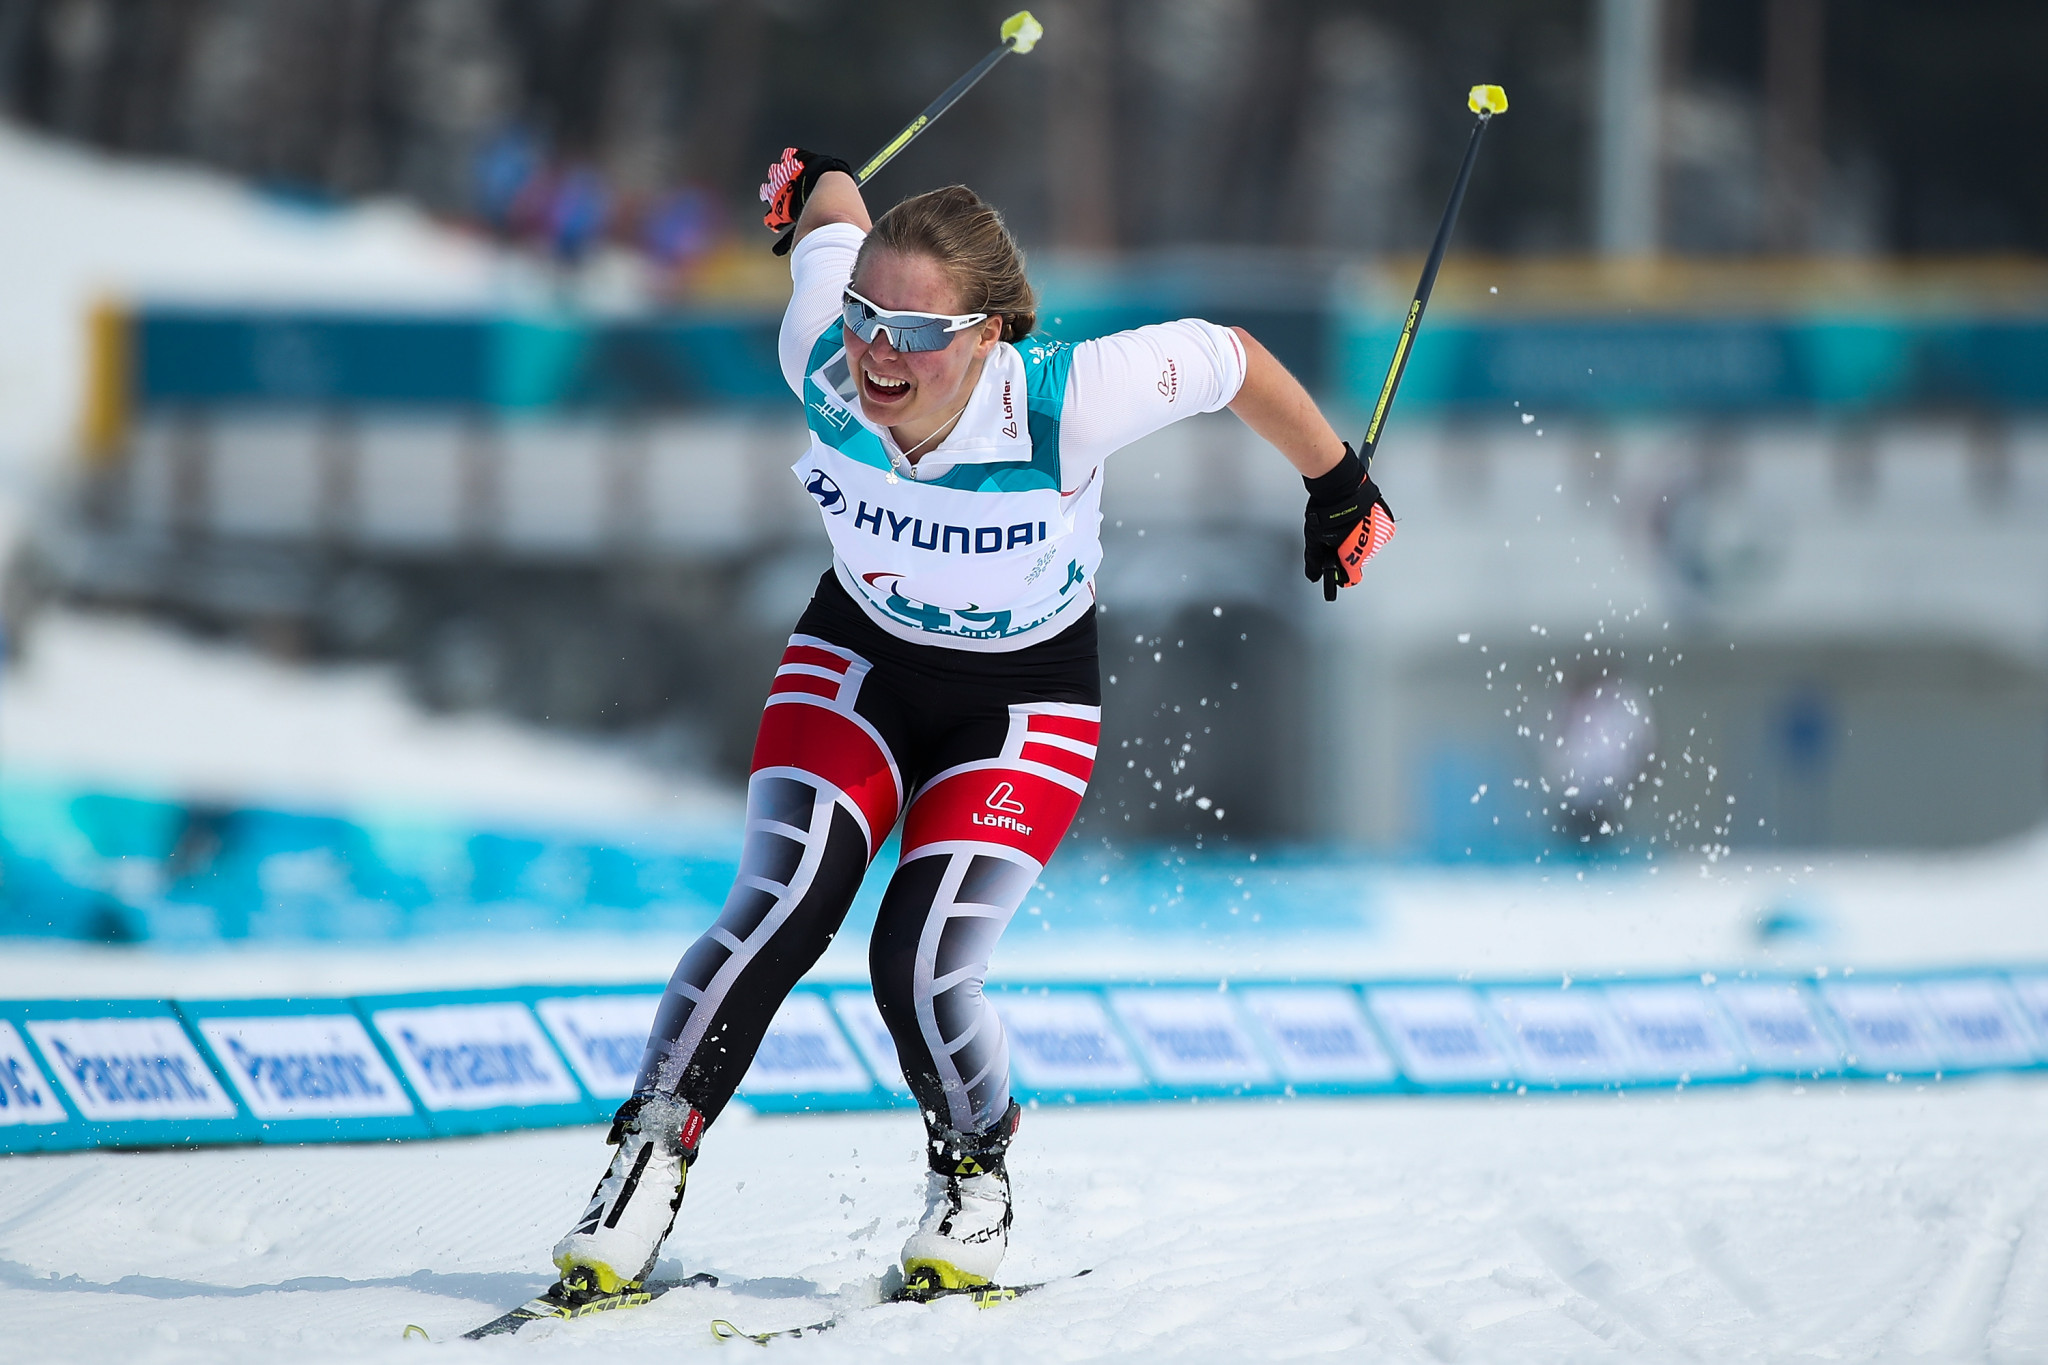 Austria's Carina Edlinger won the women's visually impaired middle distance cross-country event at the World Para Nordic Skiing World Cup event in Östersund ©Getty Images